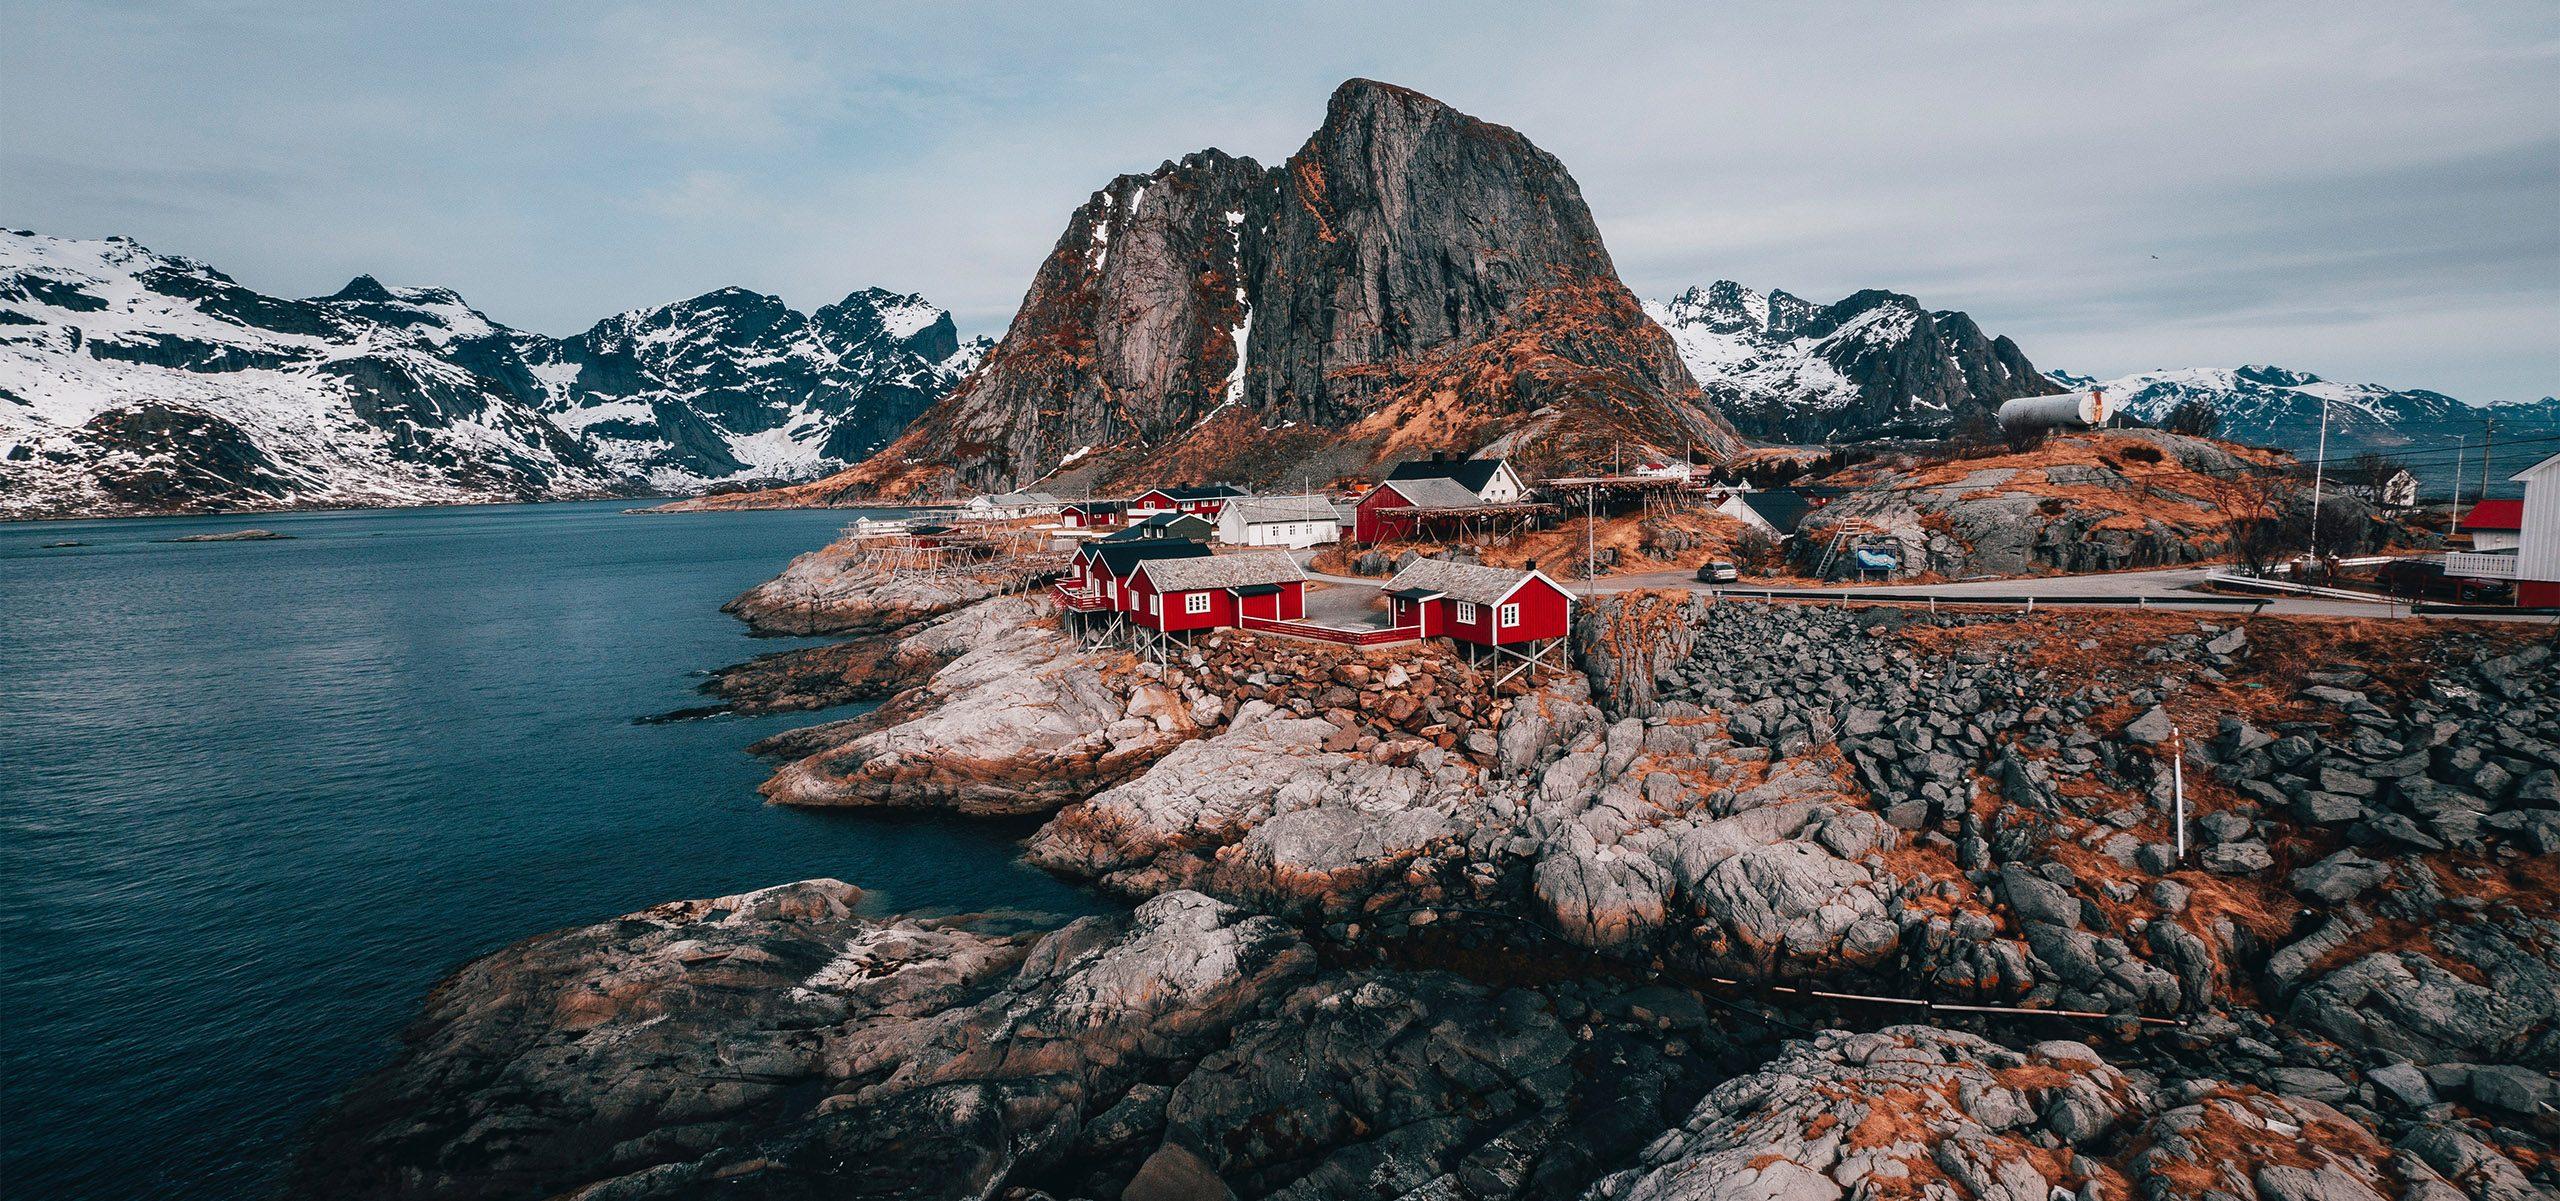 Norway - Lofoten